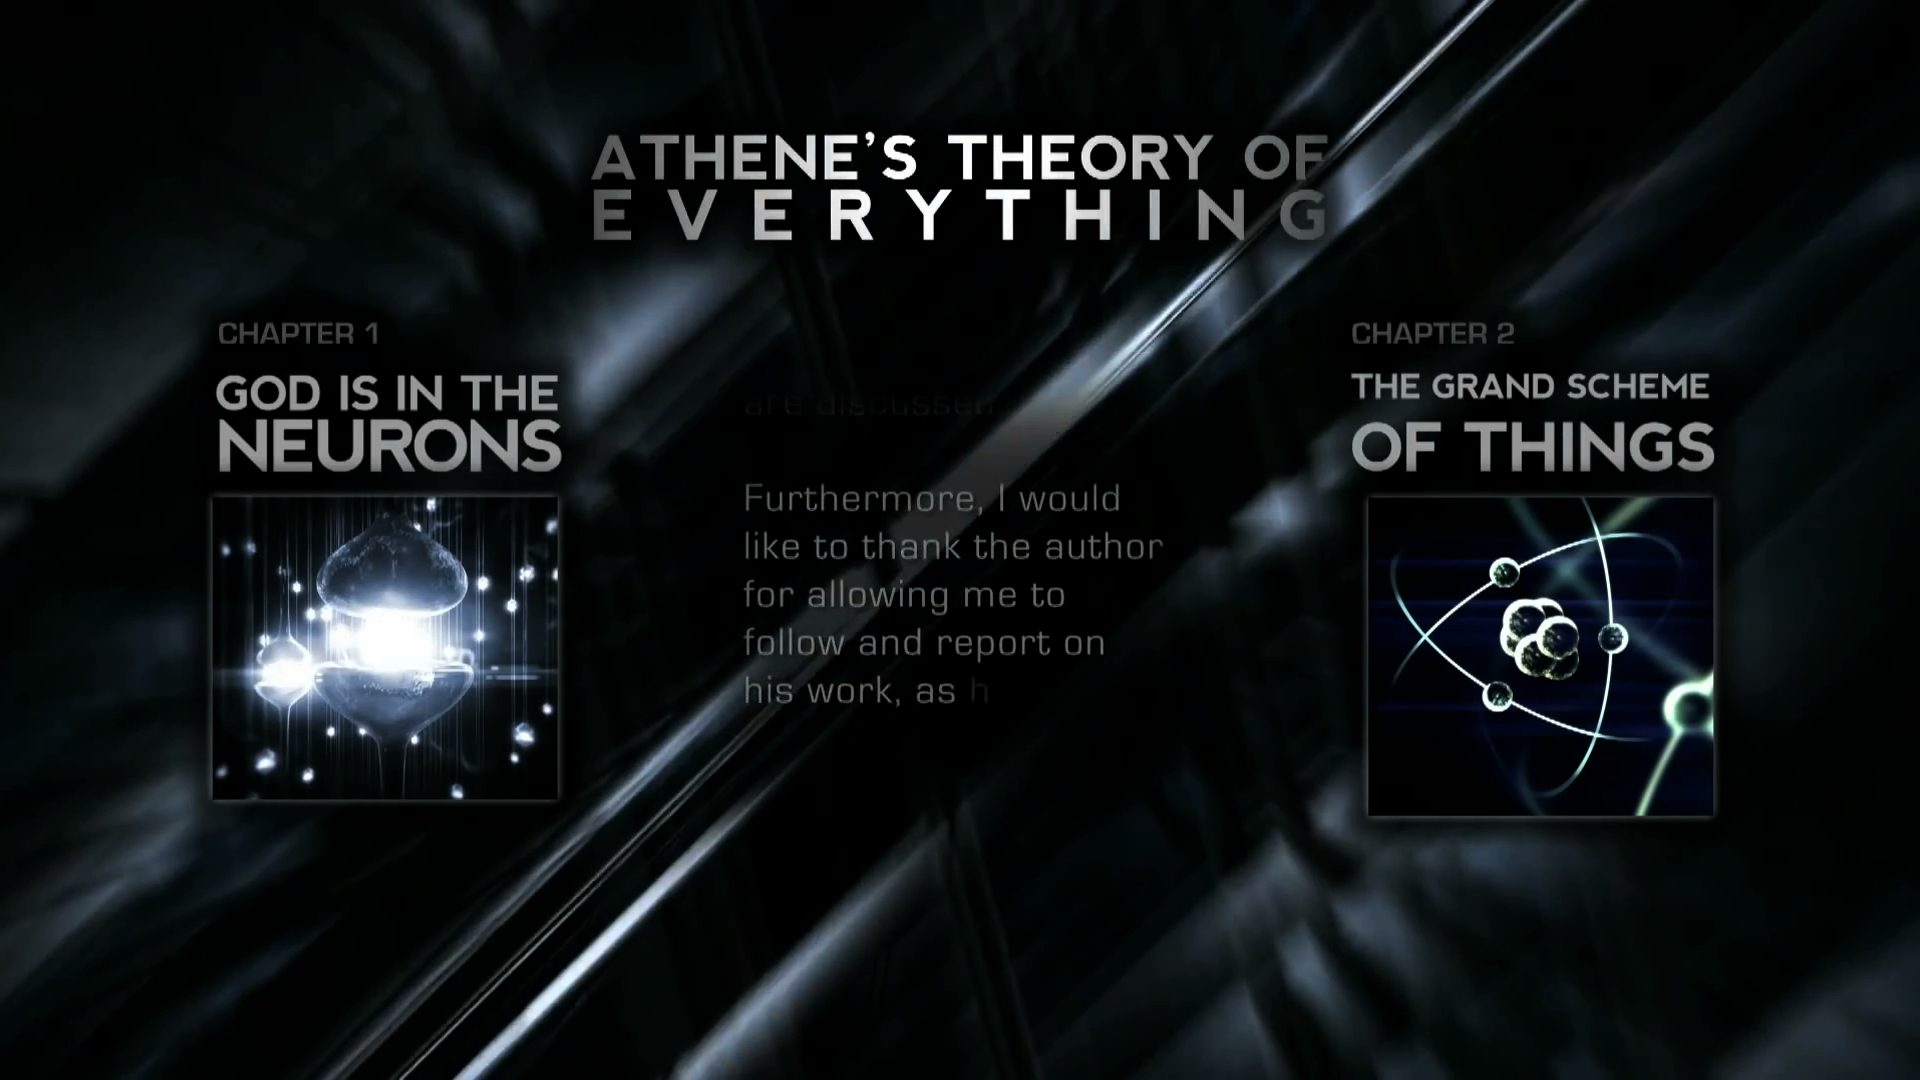 Theory of Everything by Athene